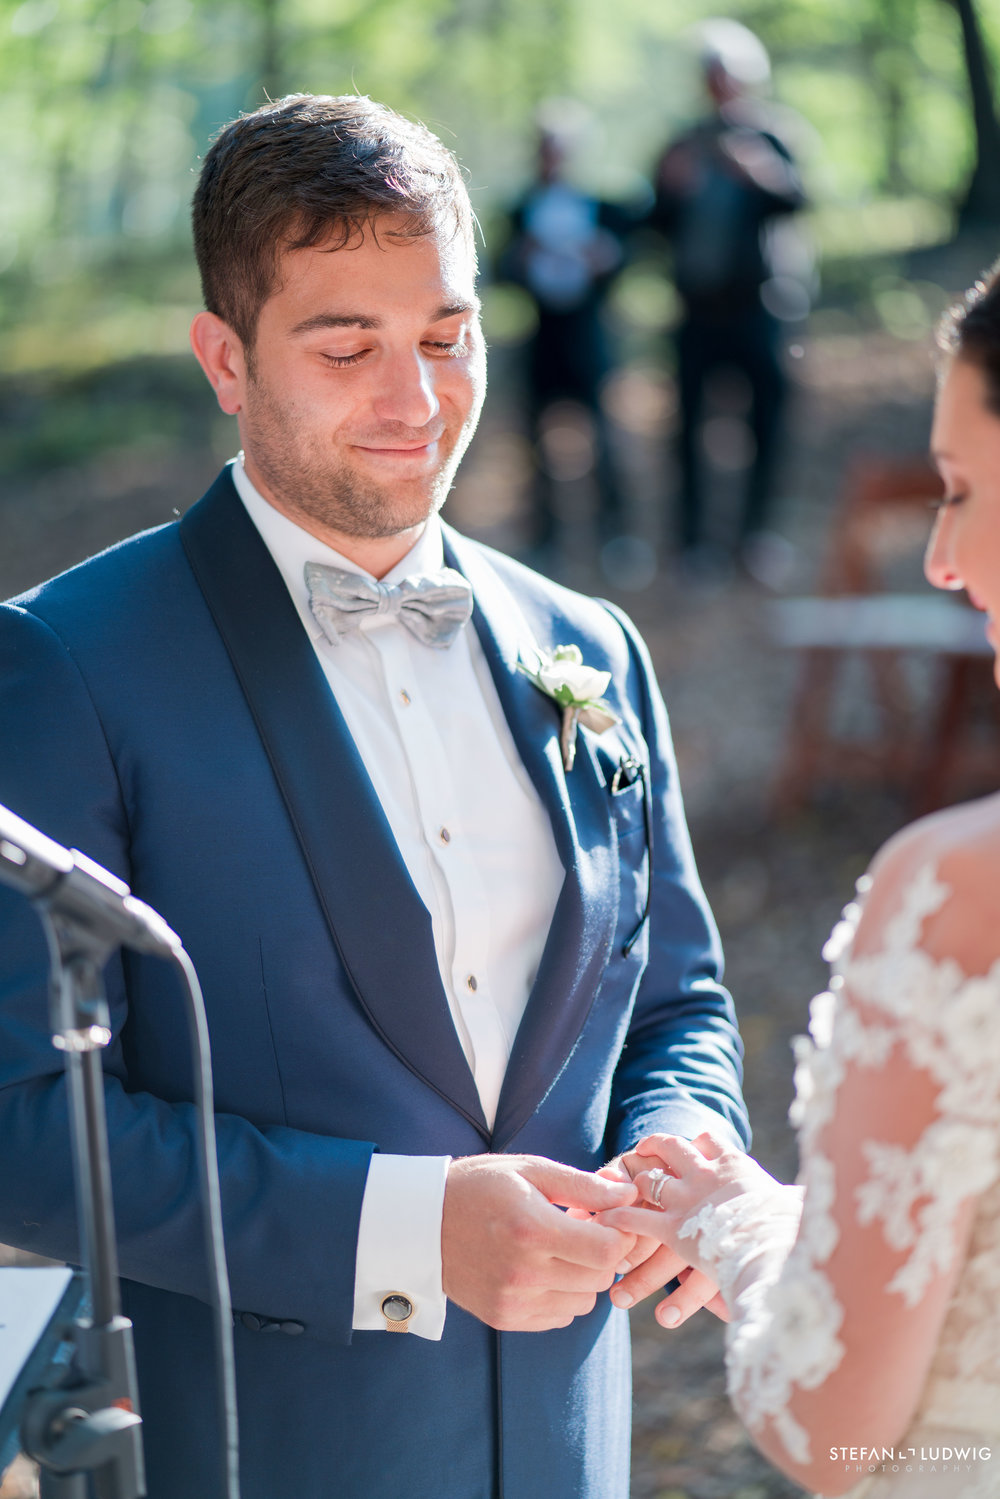 Heather and Andrew Wedding Photography ay Meadow Ridge Farm in Hudson NY by Stefan Ludwig Photography-87.jpg